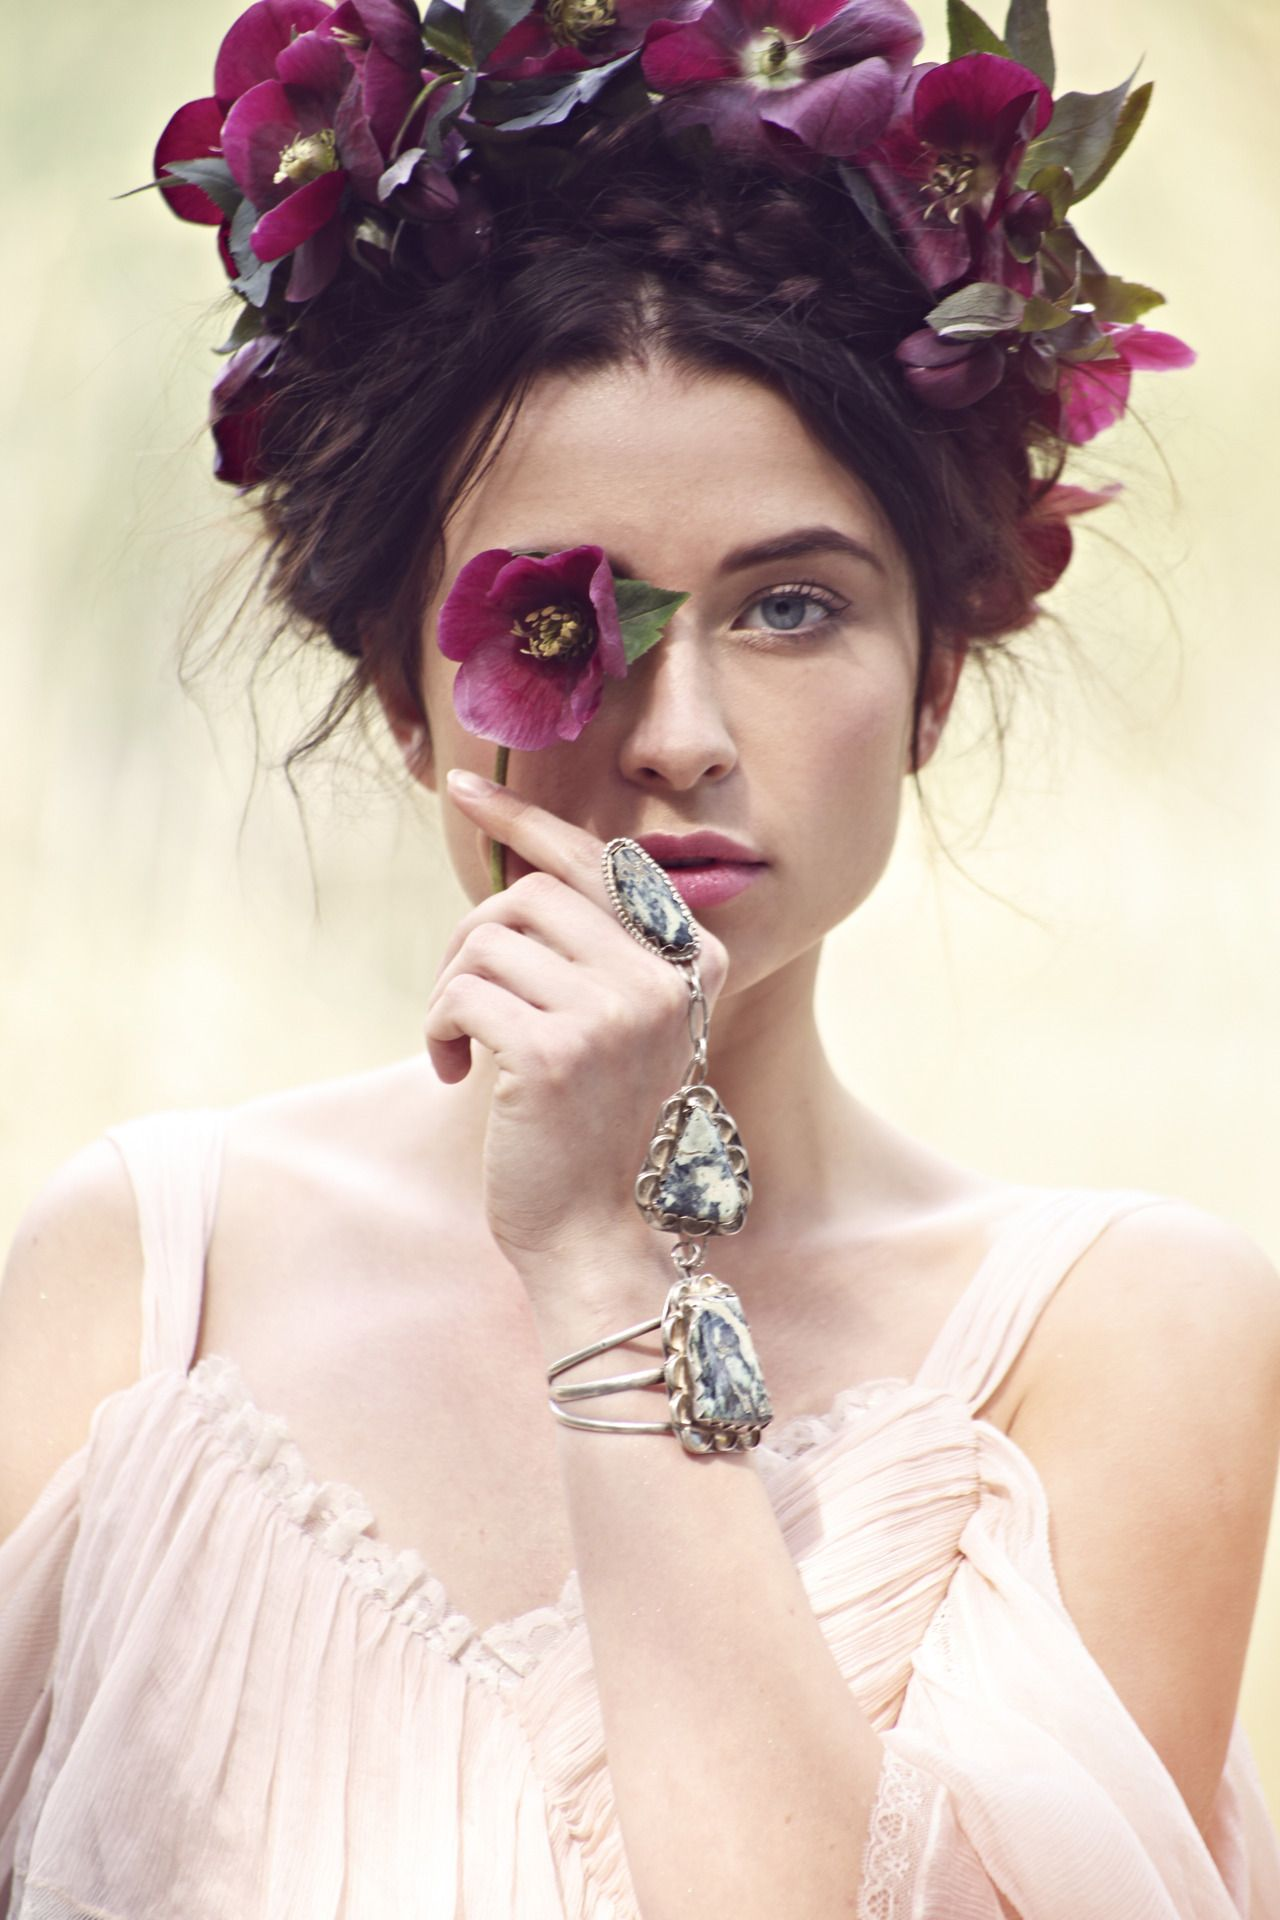 Flower Maiden Fantasy Beautiful Photography Of Women And